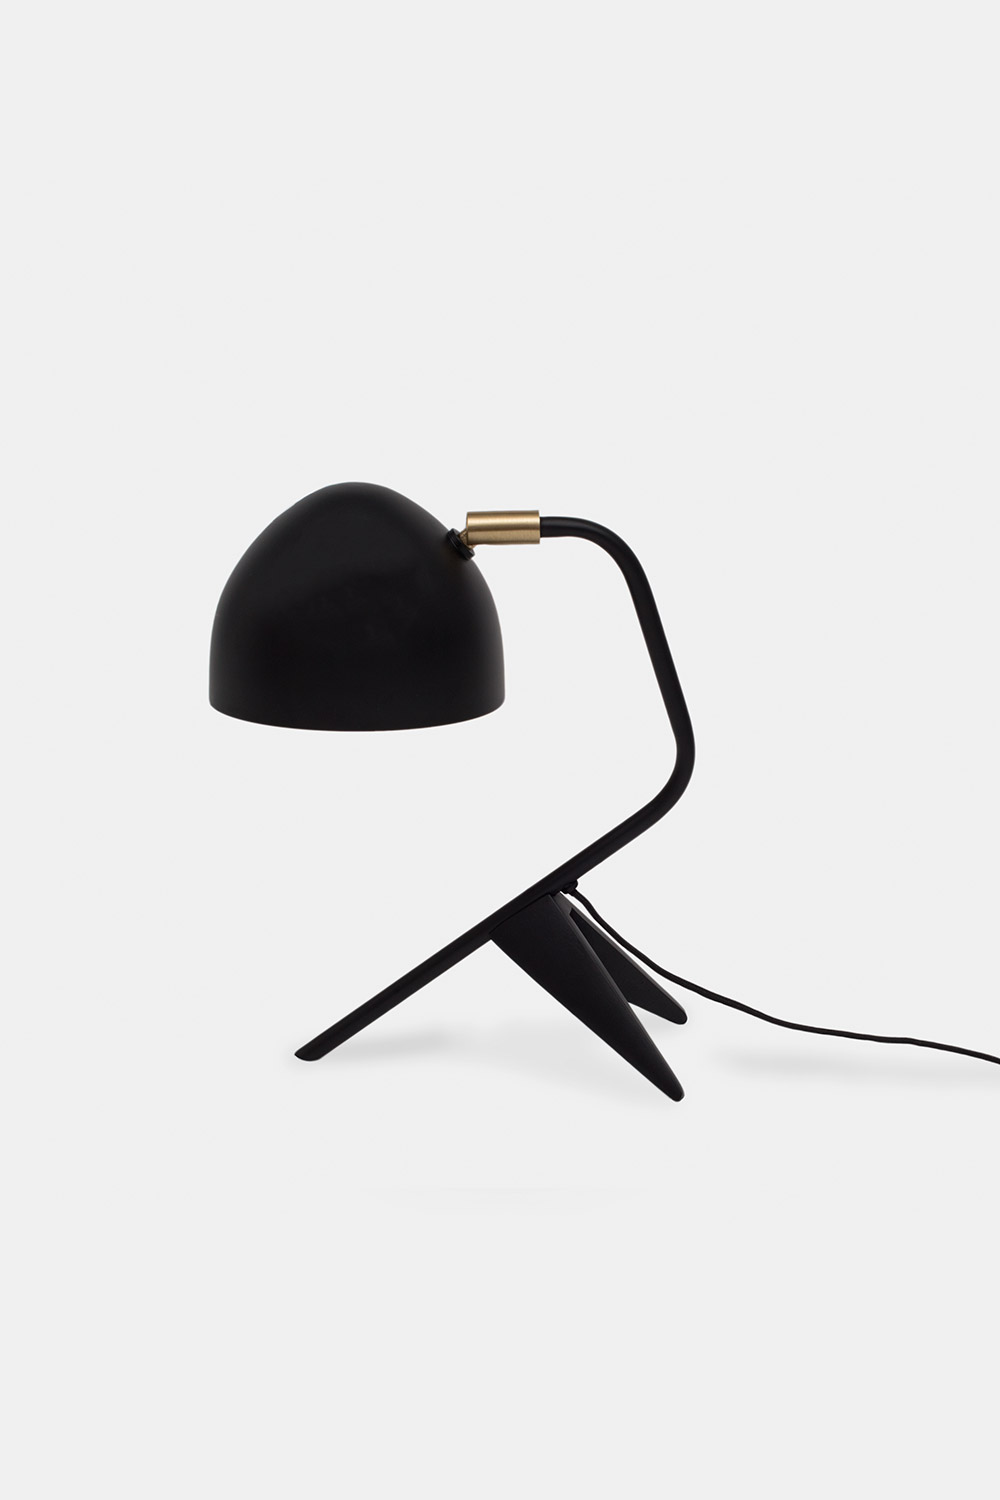 Klassik Studio Studio 1 Table Lamp - Black/Black